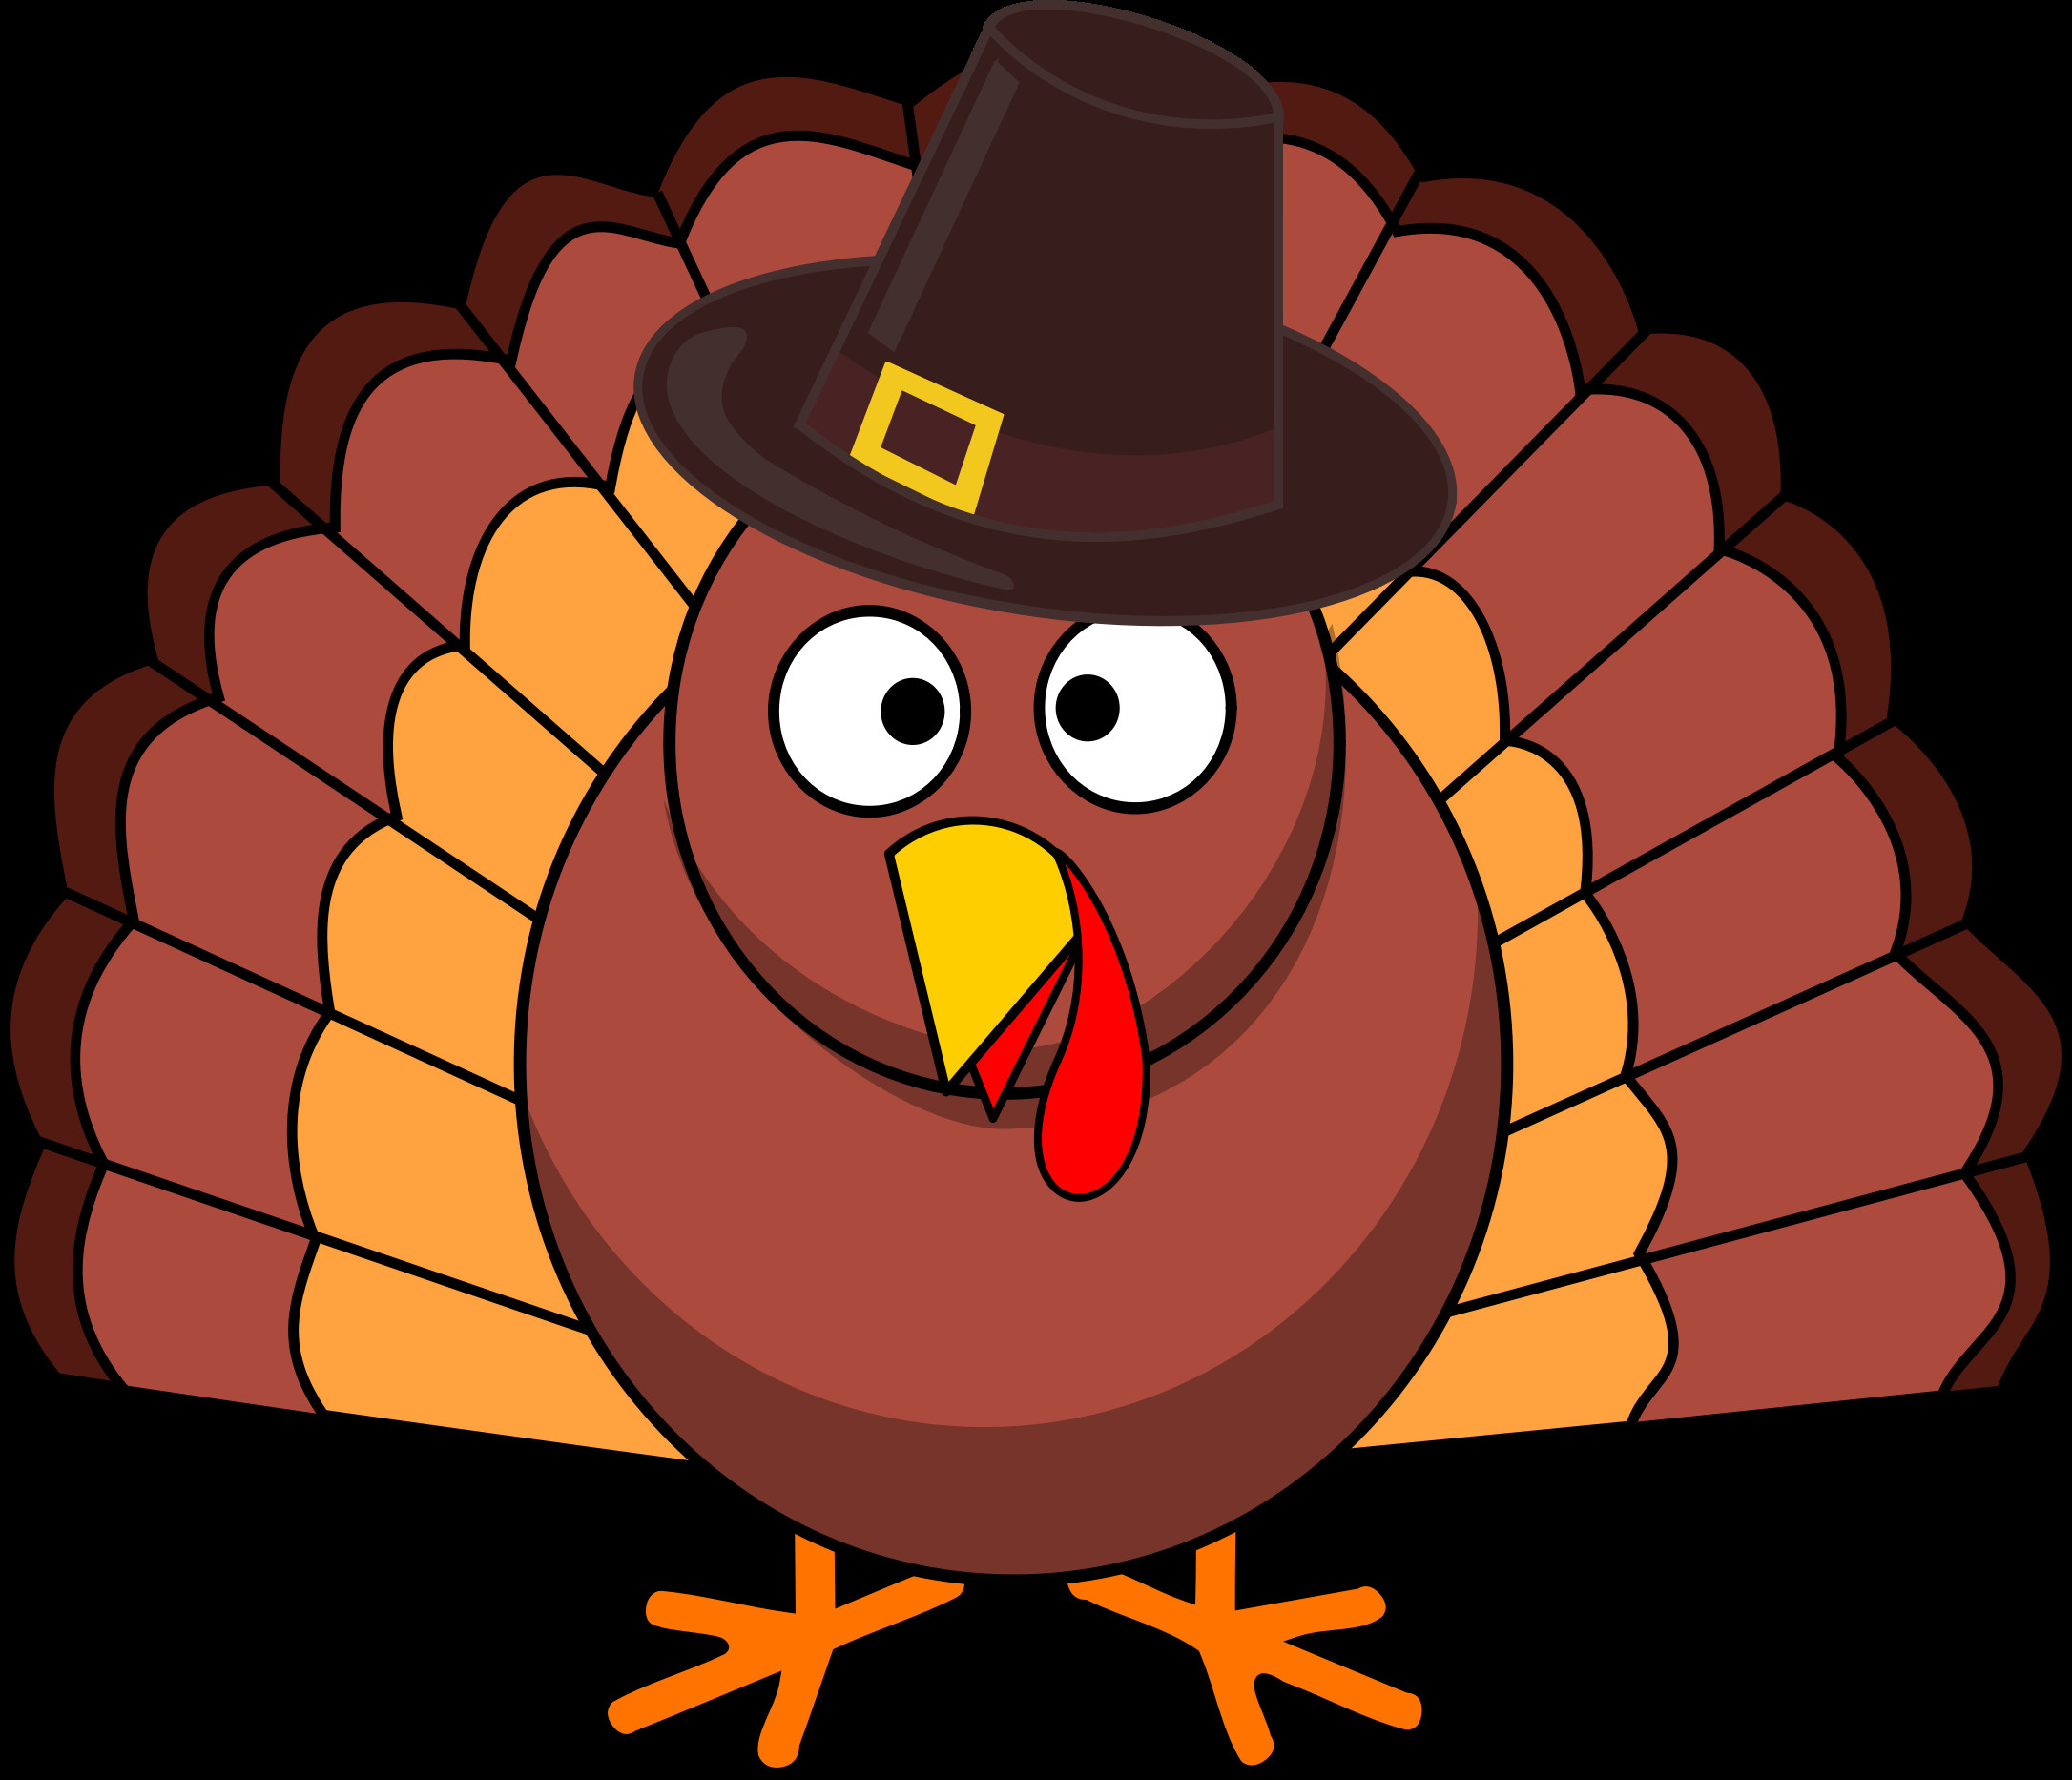 Thanksgiving Turkey Clip Art  Try timing your Thanksgiving turkey the Spotify way It's